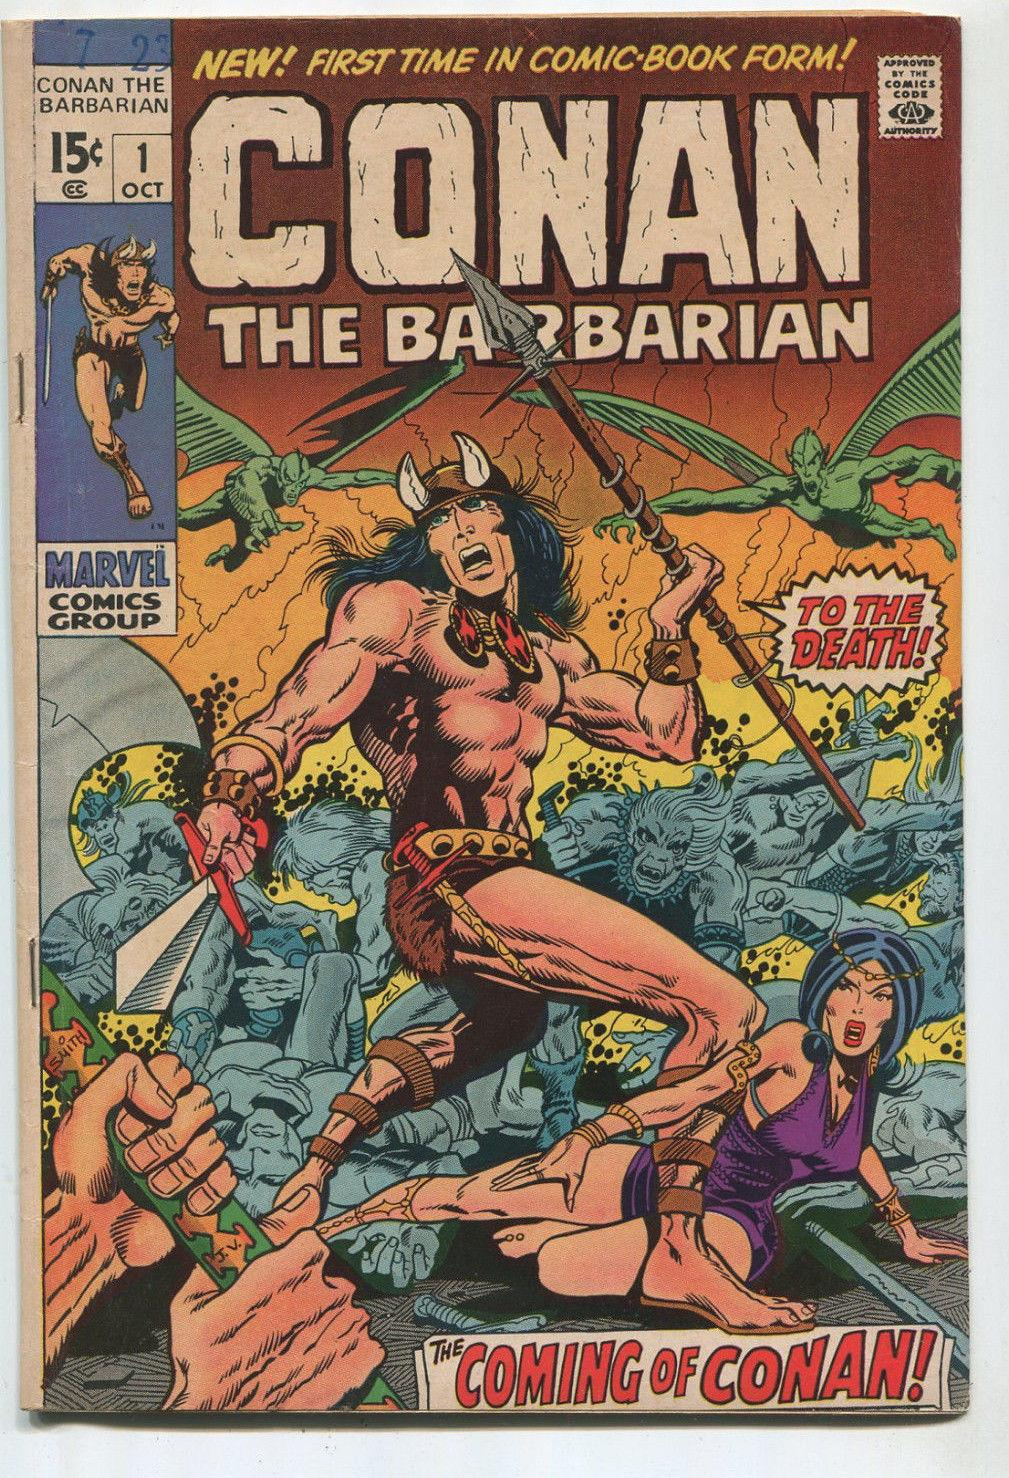 Conan The Barbarian #1 VG+ The Coming Of Conan Marvel Comics SA Comic Book Comic Book Comic Book Softcover You are purchasing the comic shown/listed in the titlePlease be familiar with comic grading terms like: Very Fine, Very Good, Near Mint. Grade is our